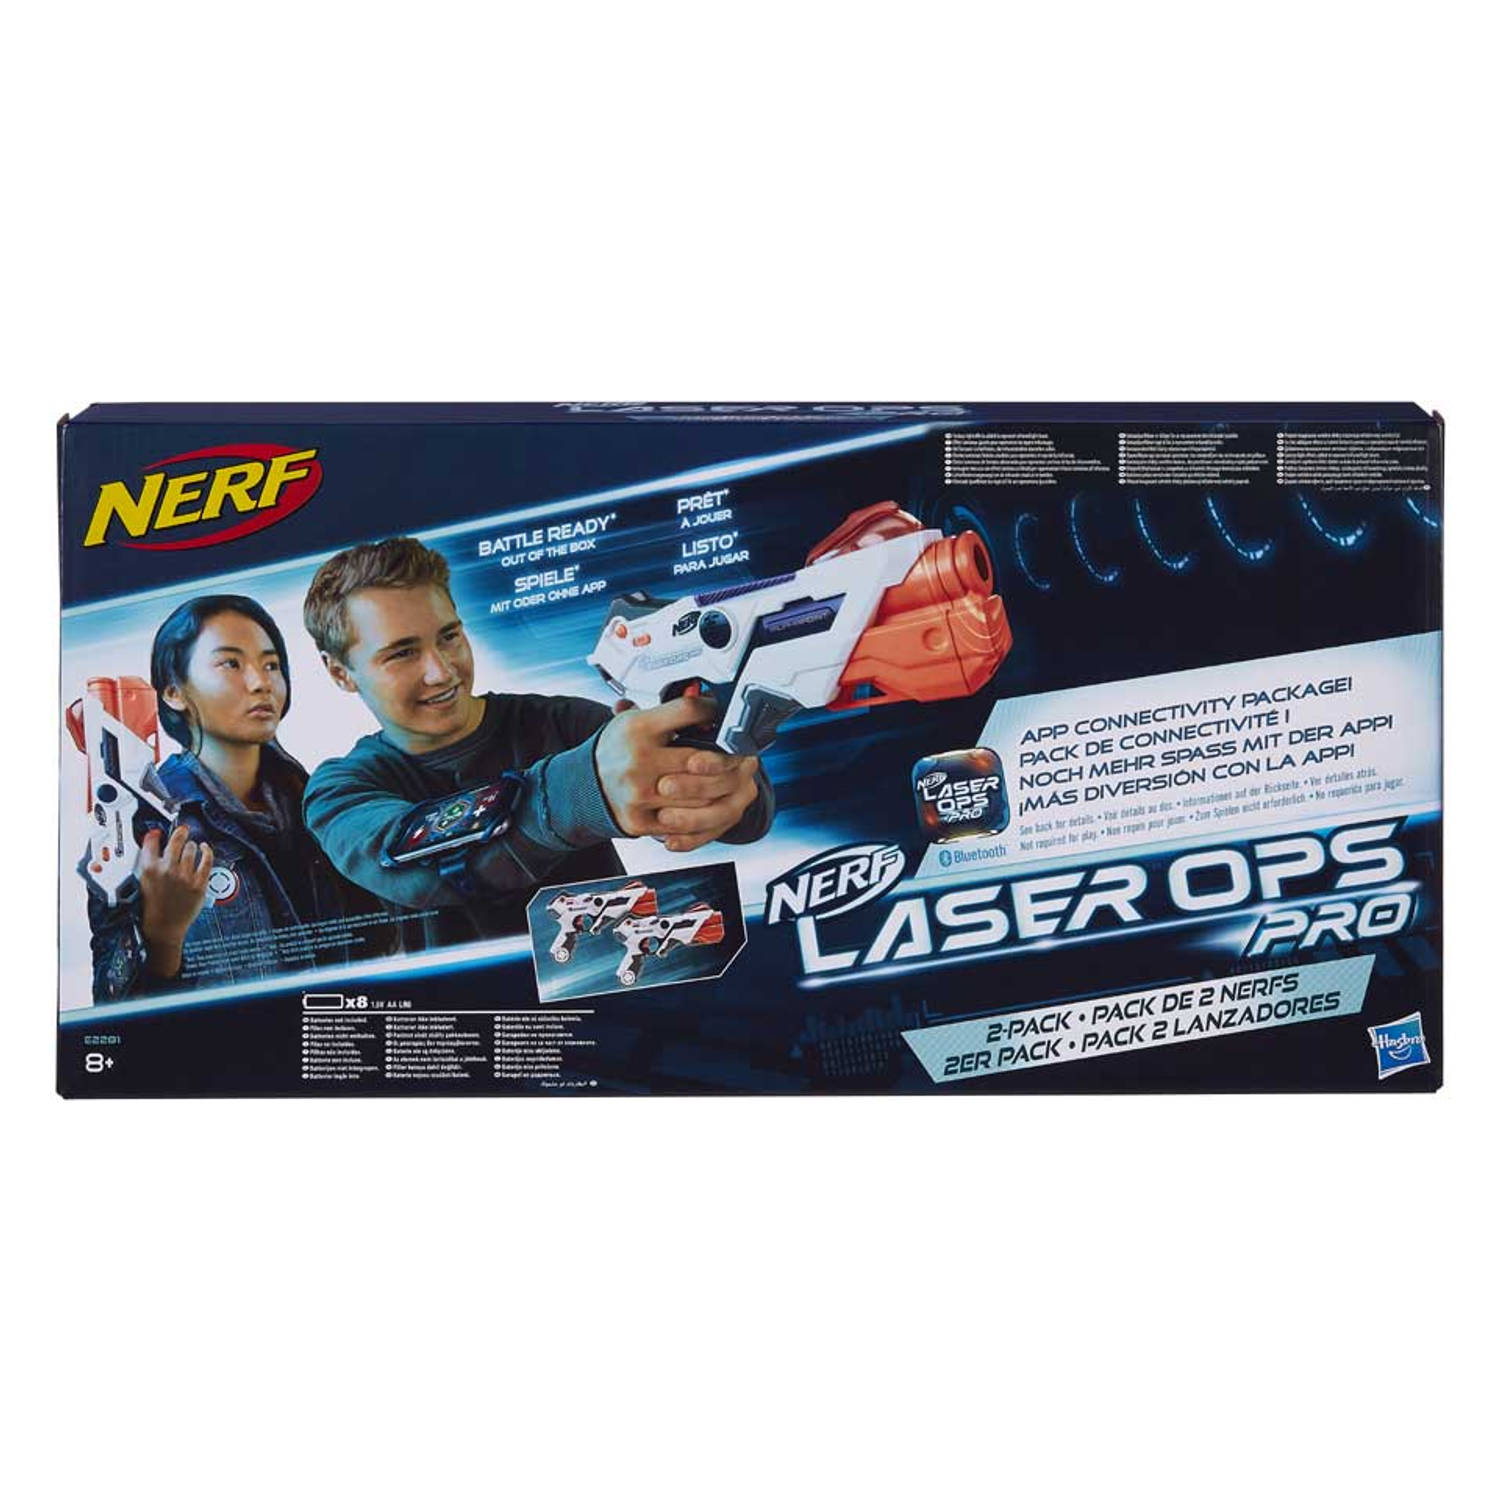 NERF Alphapoint duopack blasters